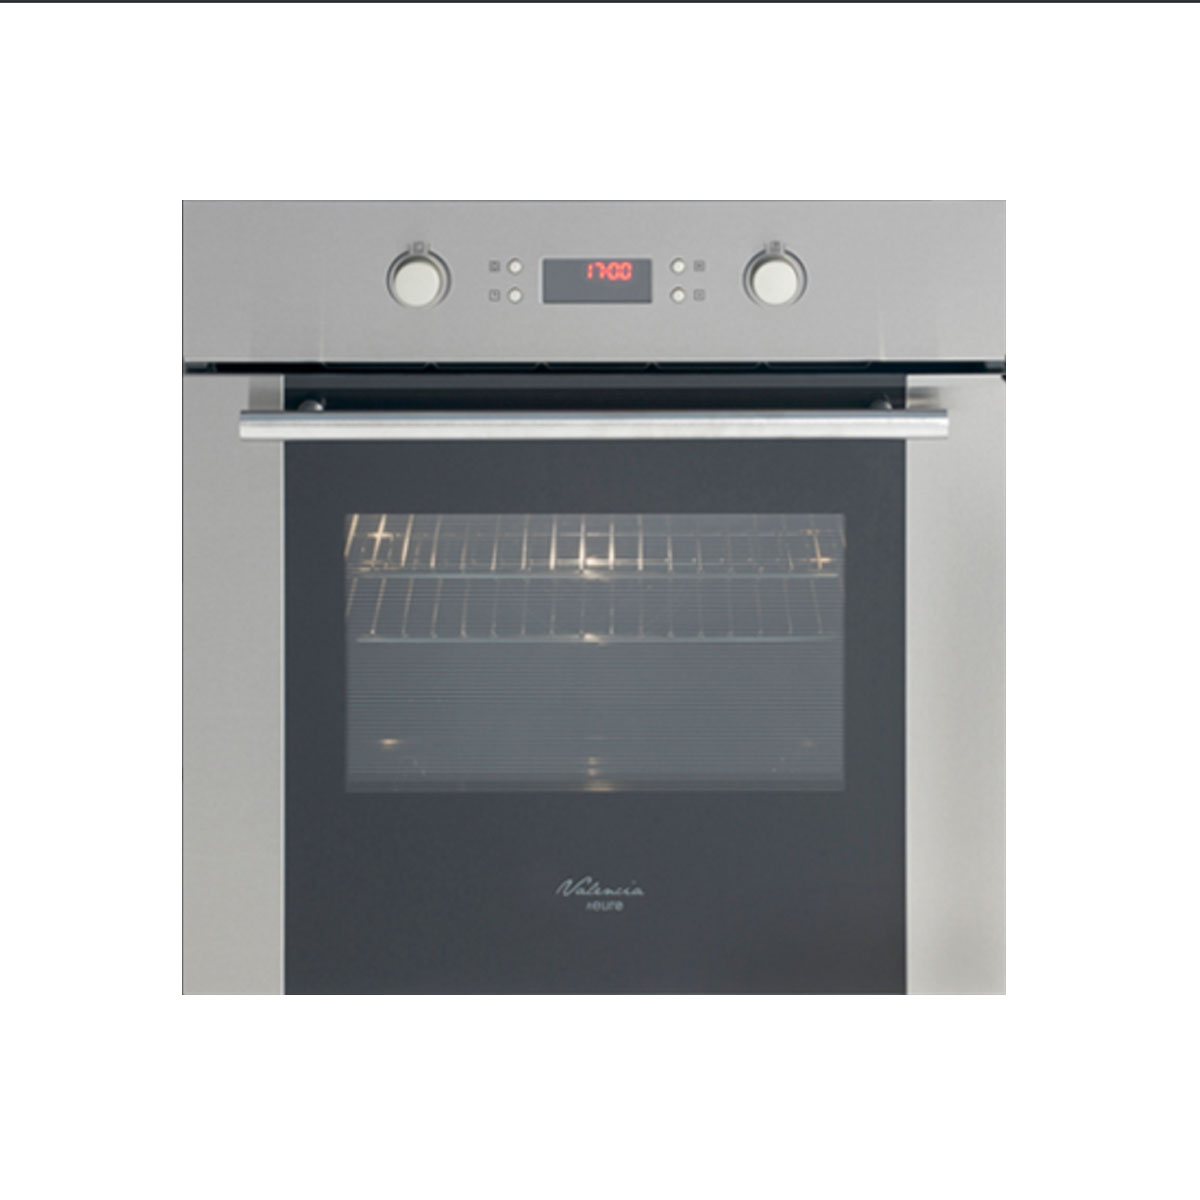 Euro EP60M8SX Appliances 60cm Electric Built-In Oven